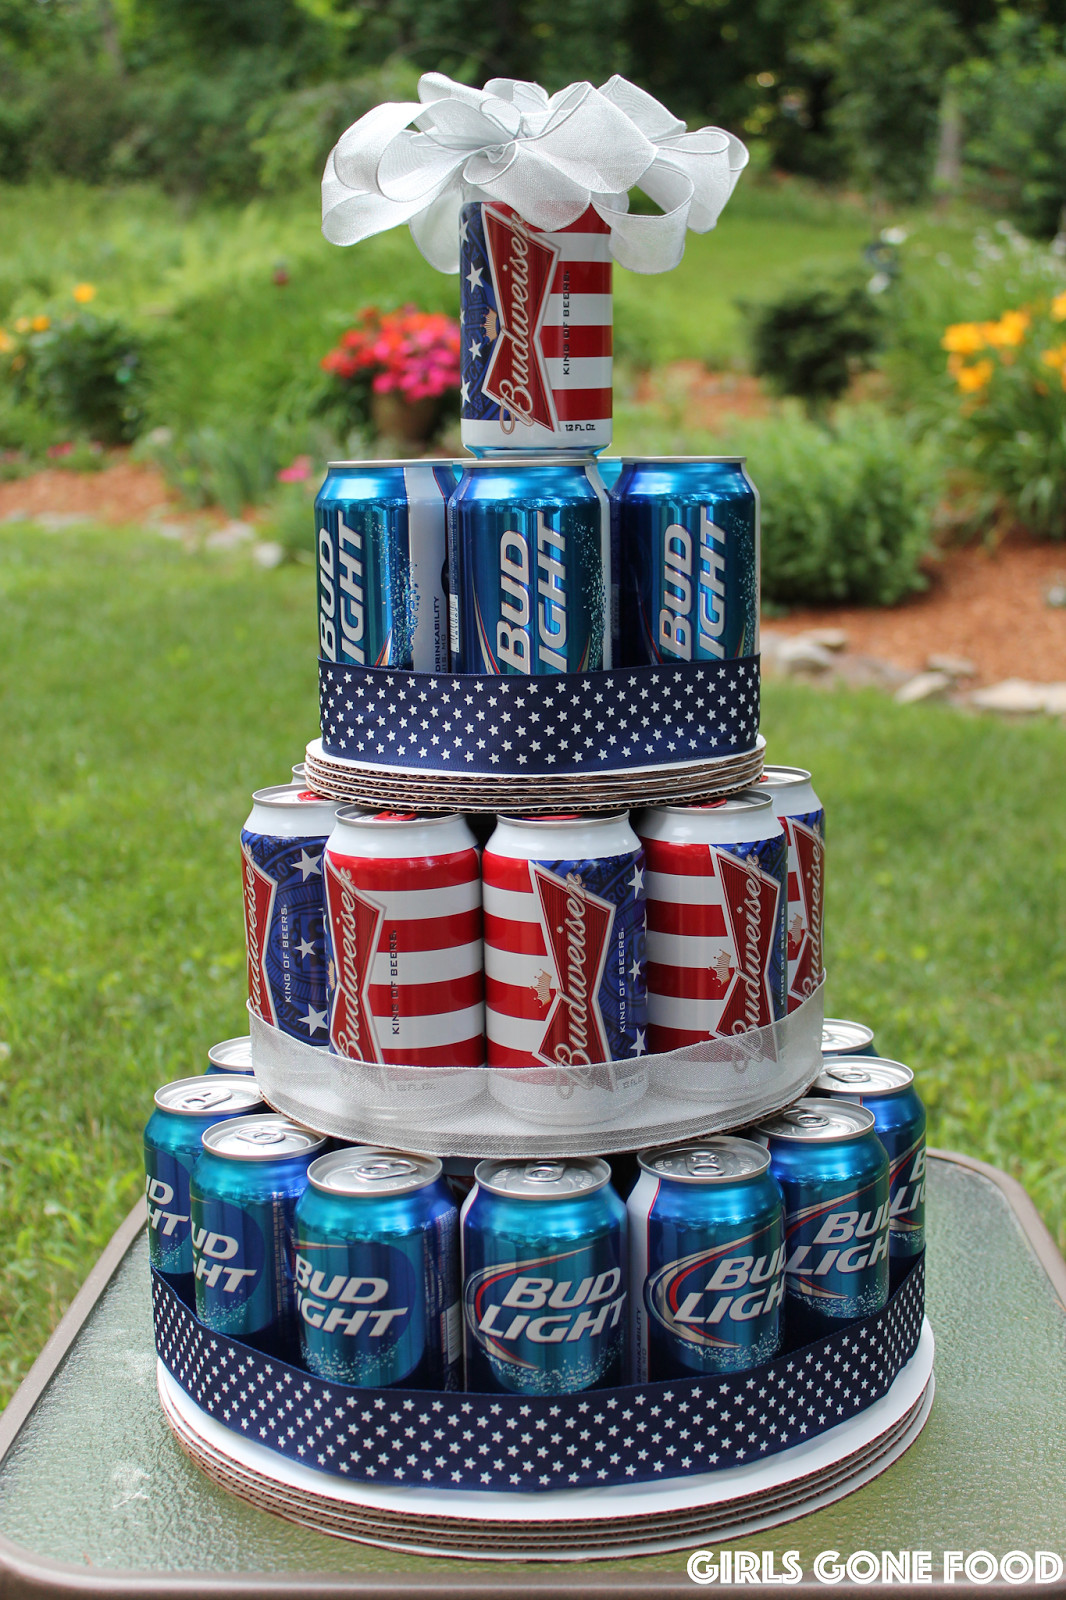 Best ideas about Birthday Beer Cake . Save or Pin girlsgonefood Beer Cake Now.